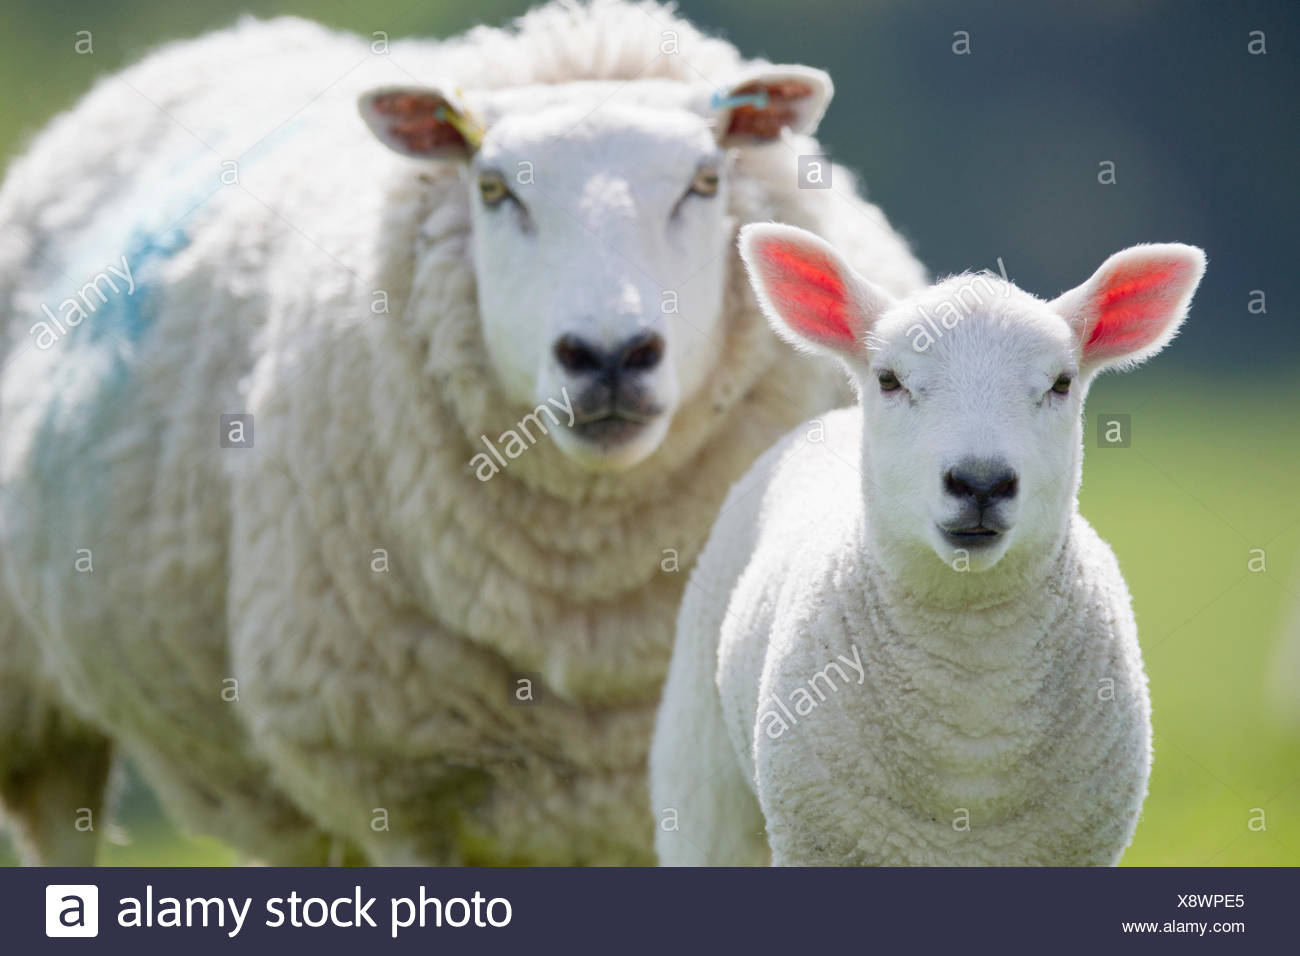 Portrait of sheep and lamb, focus on foreground Stock Photo